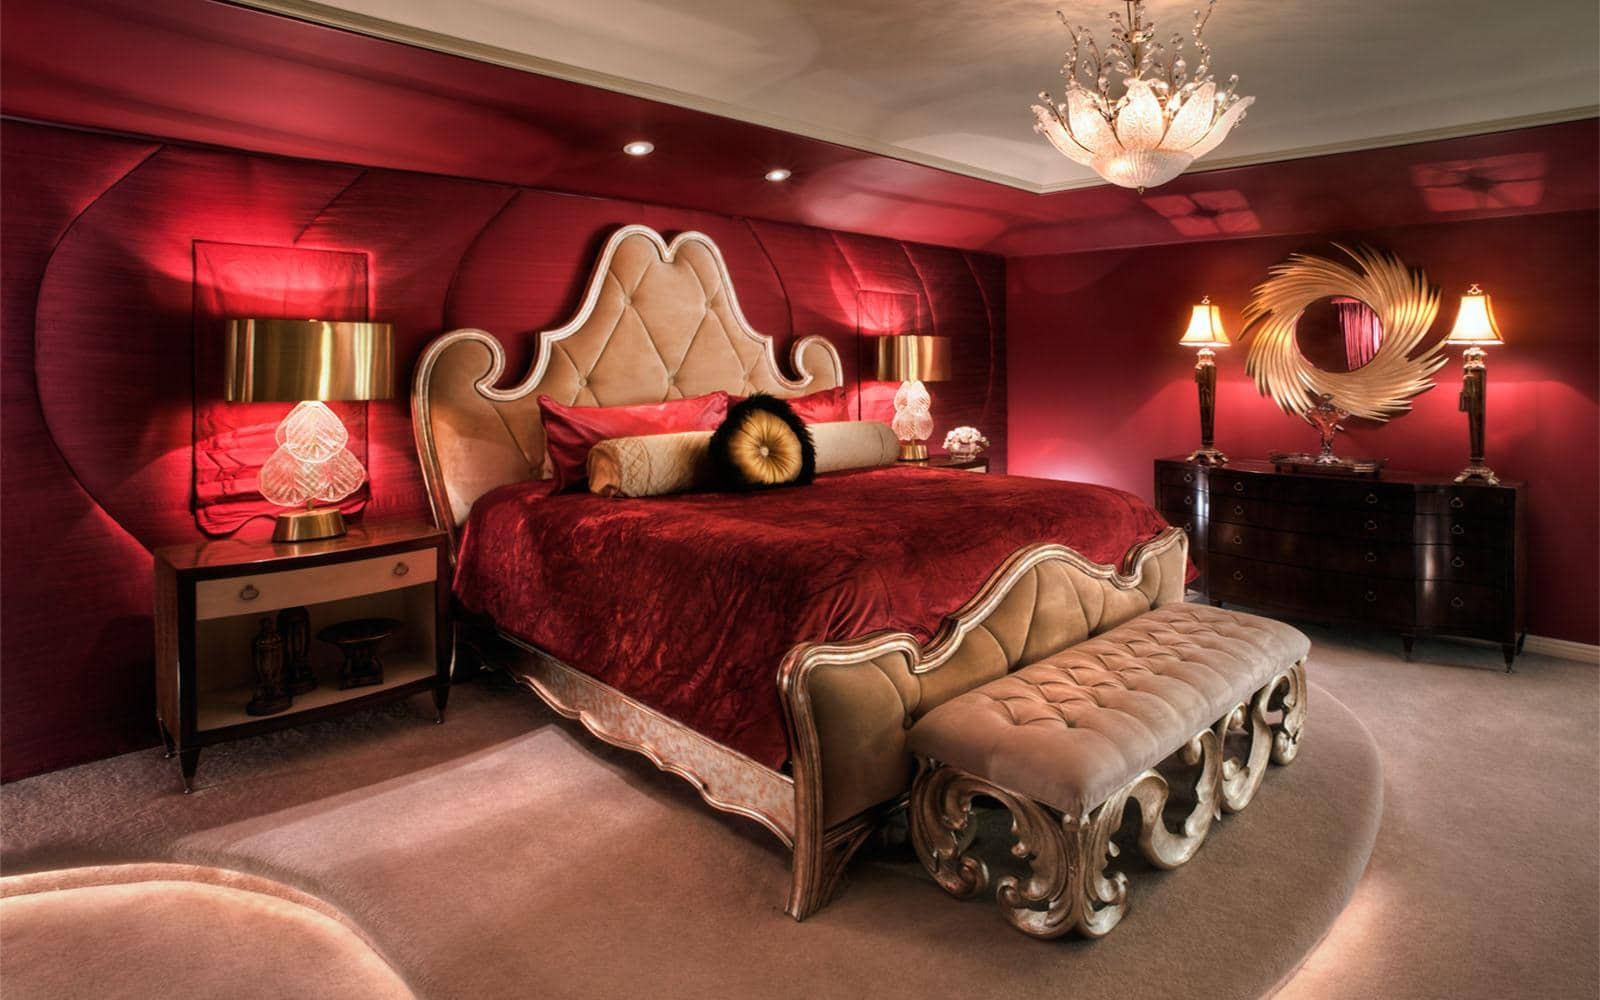 Burgundy colored bedroom with royal chic soft headboard